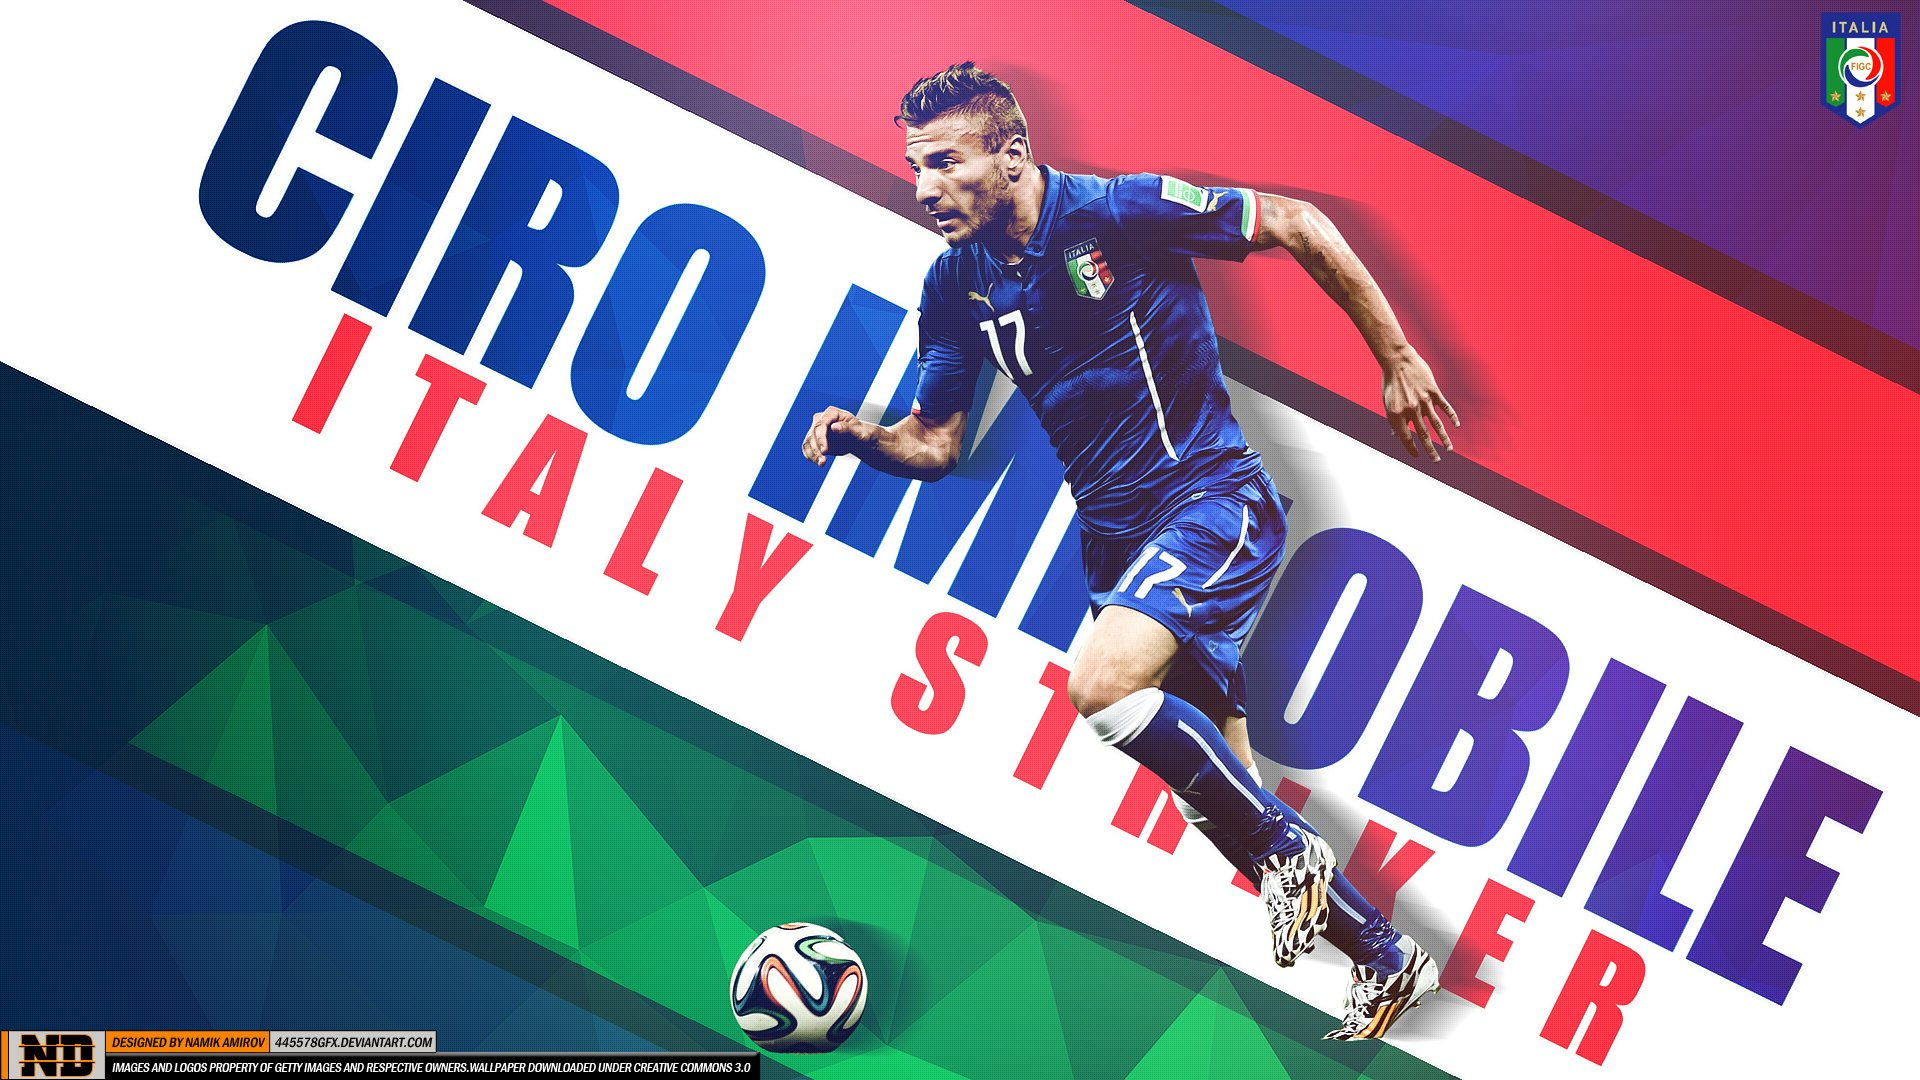 b019d2d0ce5 4 Ciro Immobile HD Wallpapers | Background Images - Wallpaper Abyss